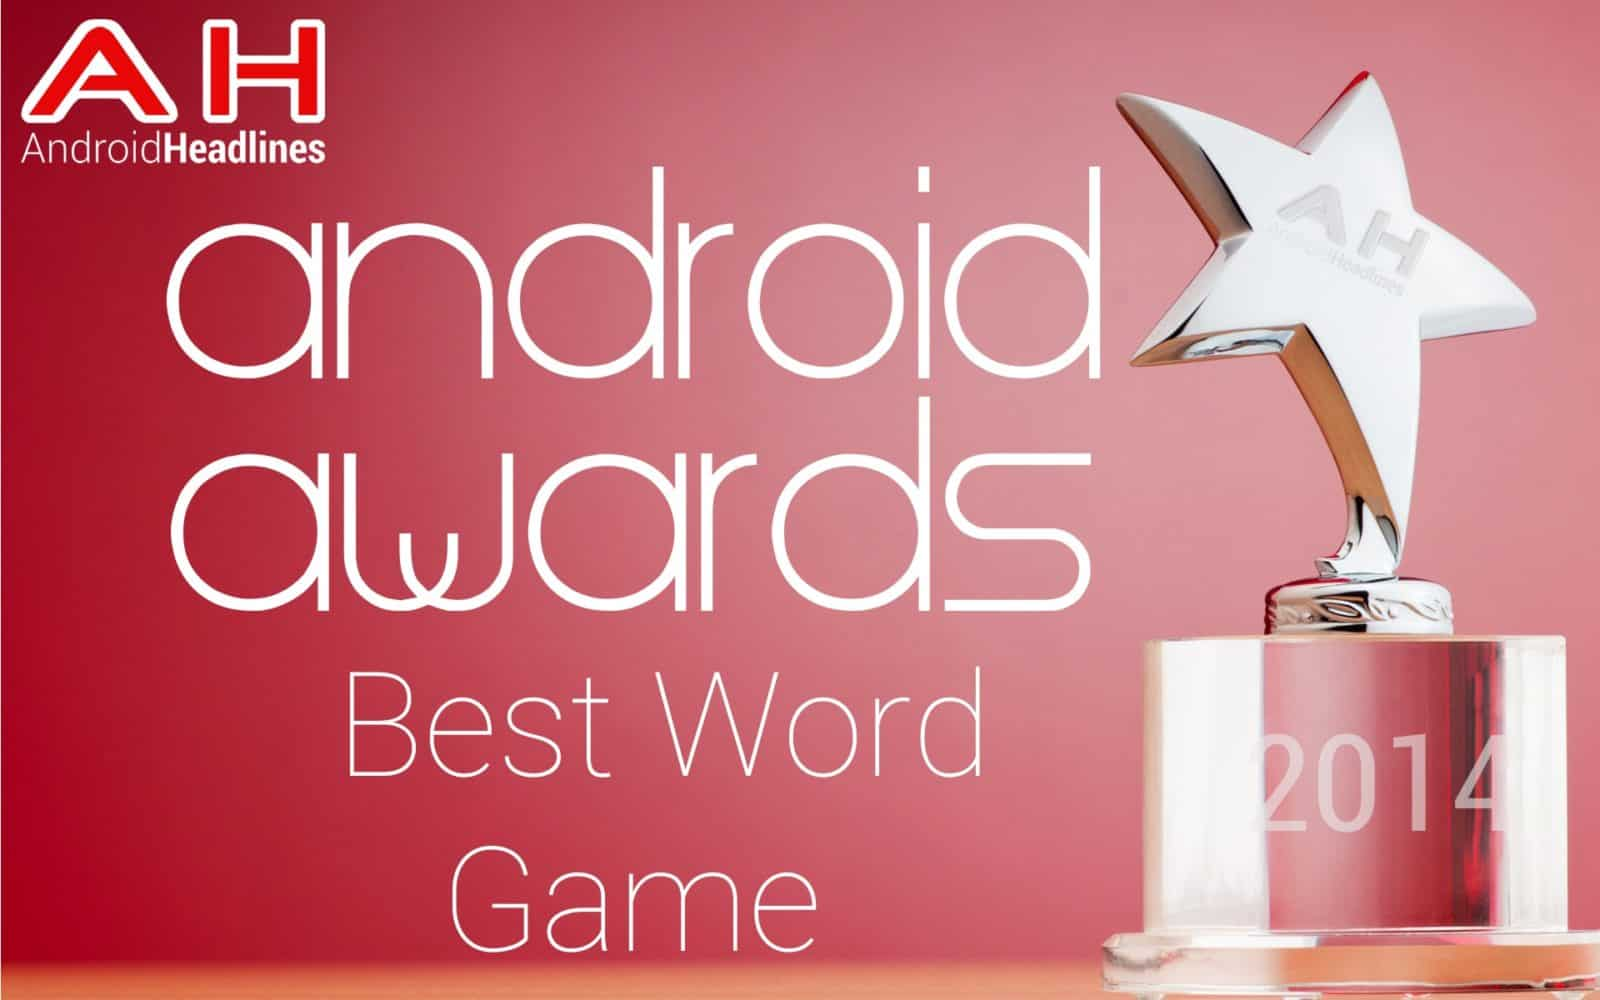 AH Awards 2015 - Best Word Game Android